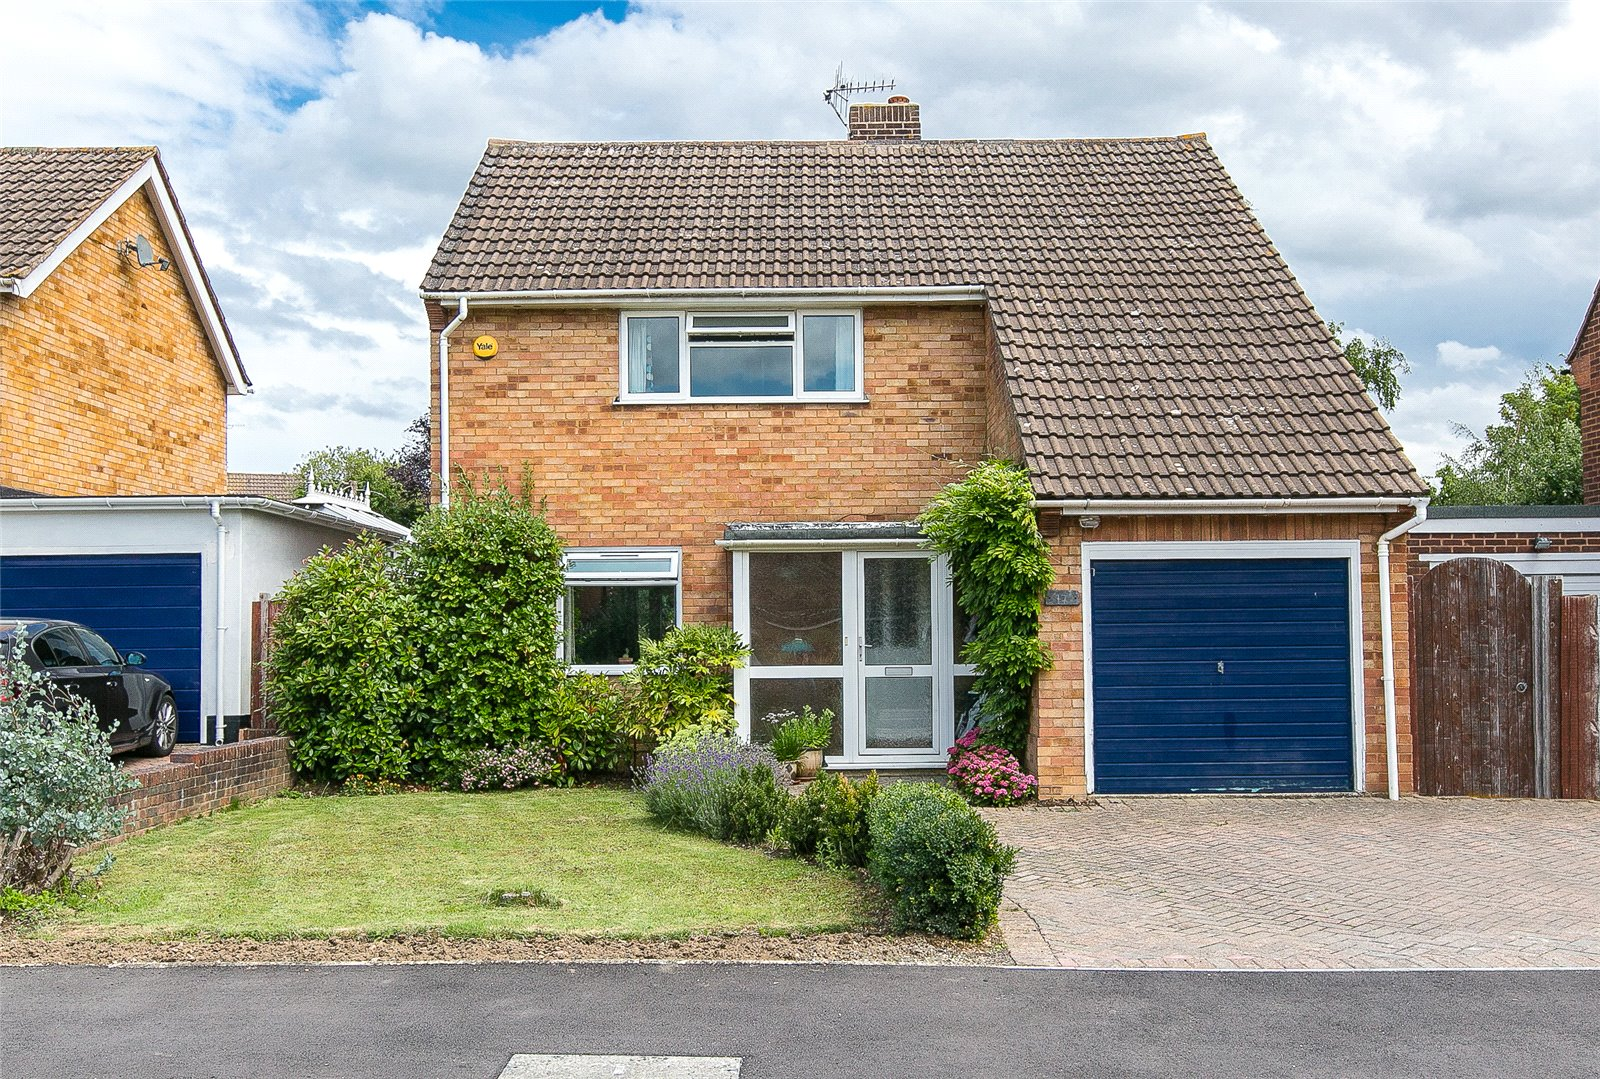 Woodview Crescent, Hildenborough, Tonbridge, Kent, TN11